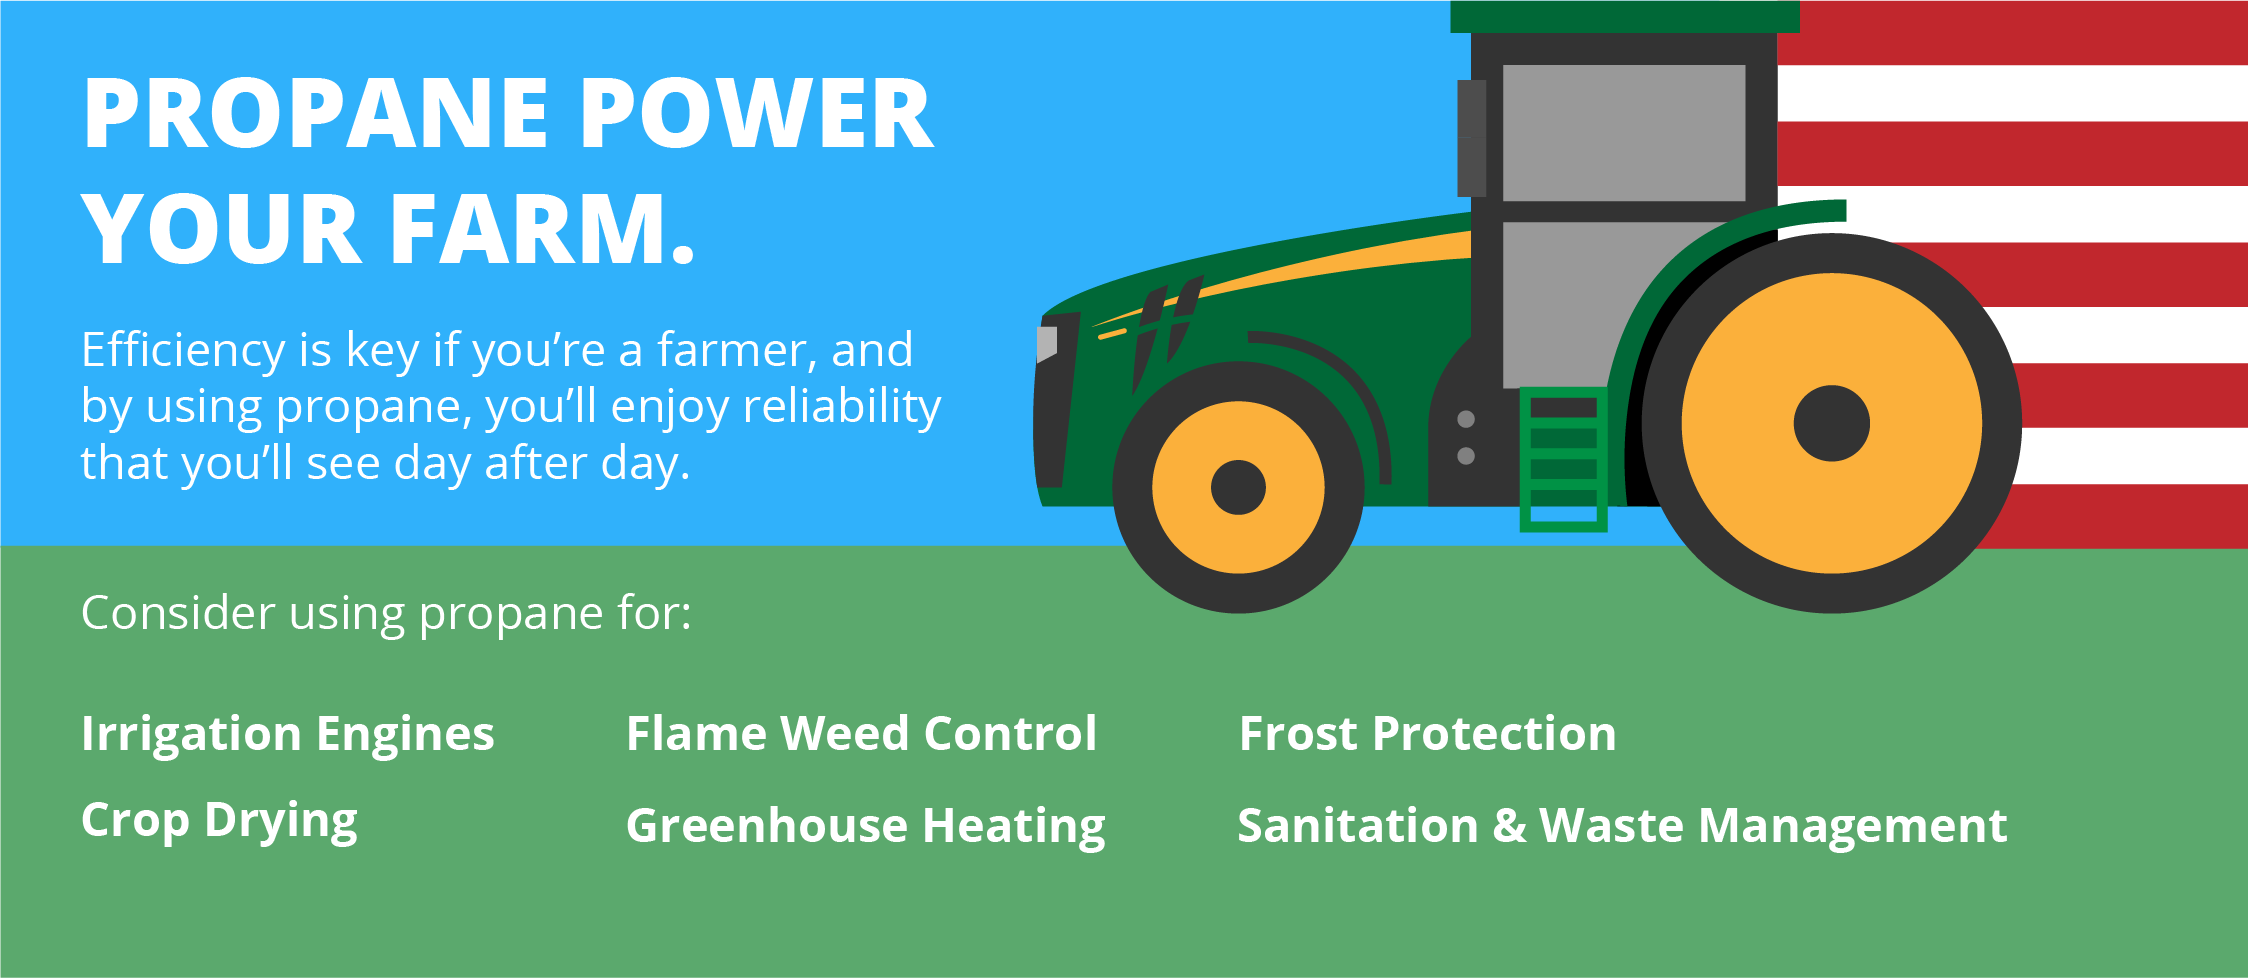 Propane Power Your Farm